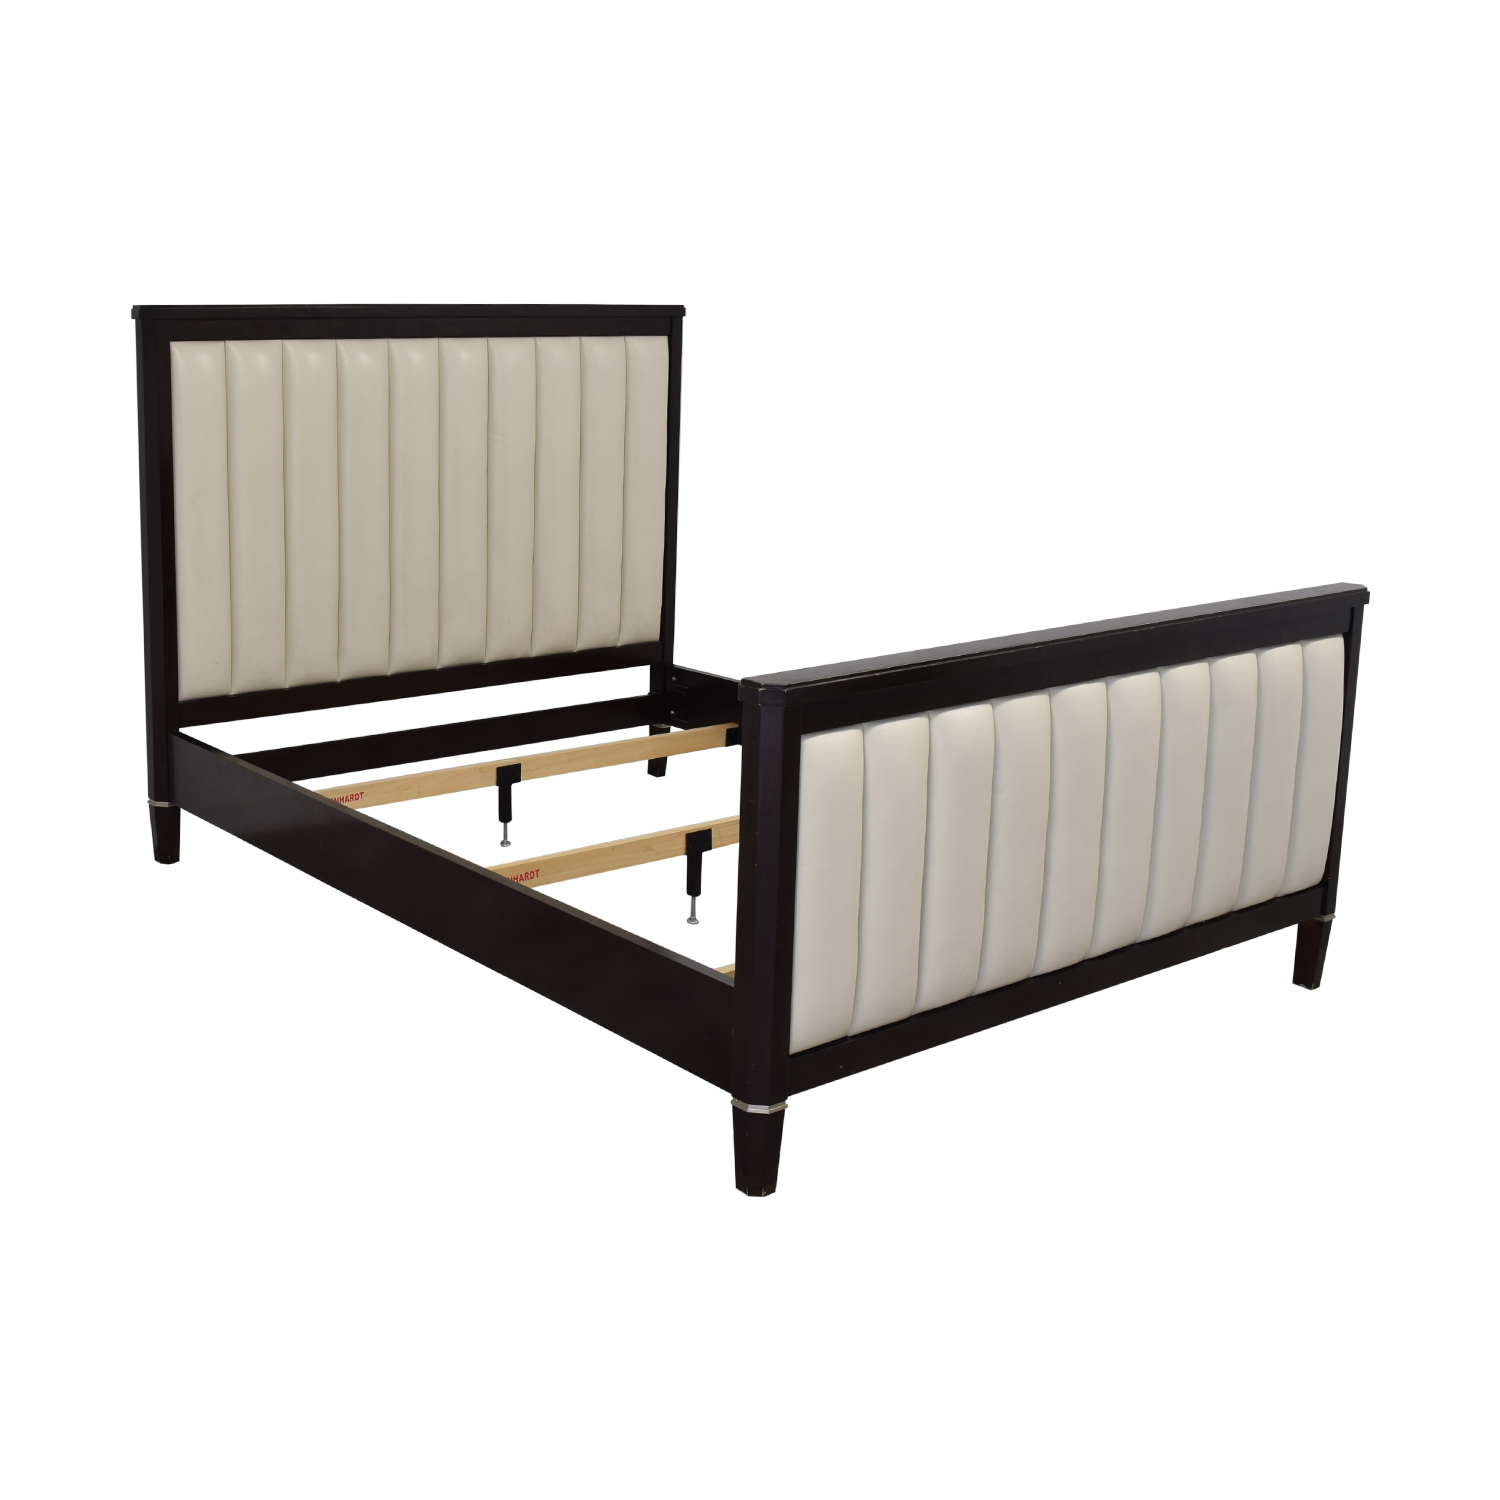 Bernhardt Bernhardt Queen Panel Bed used